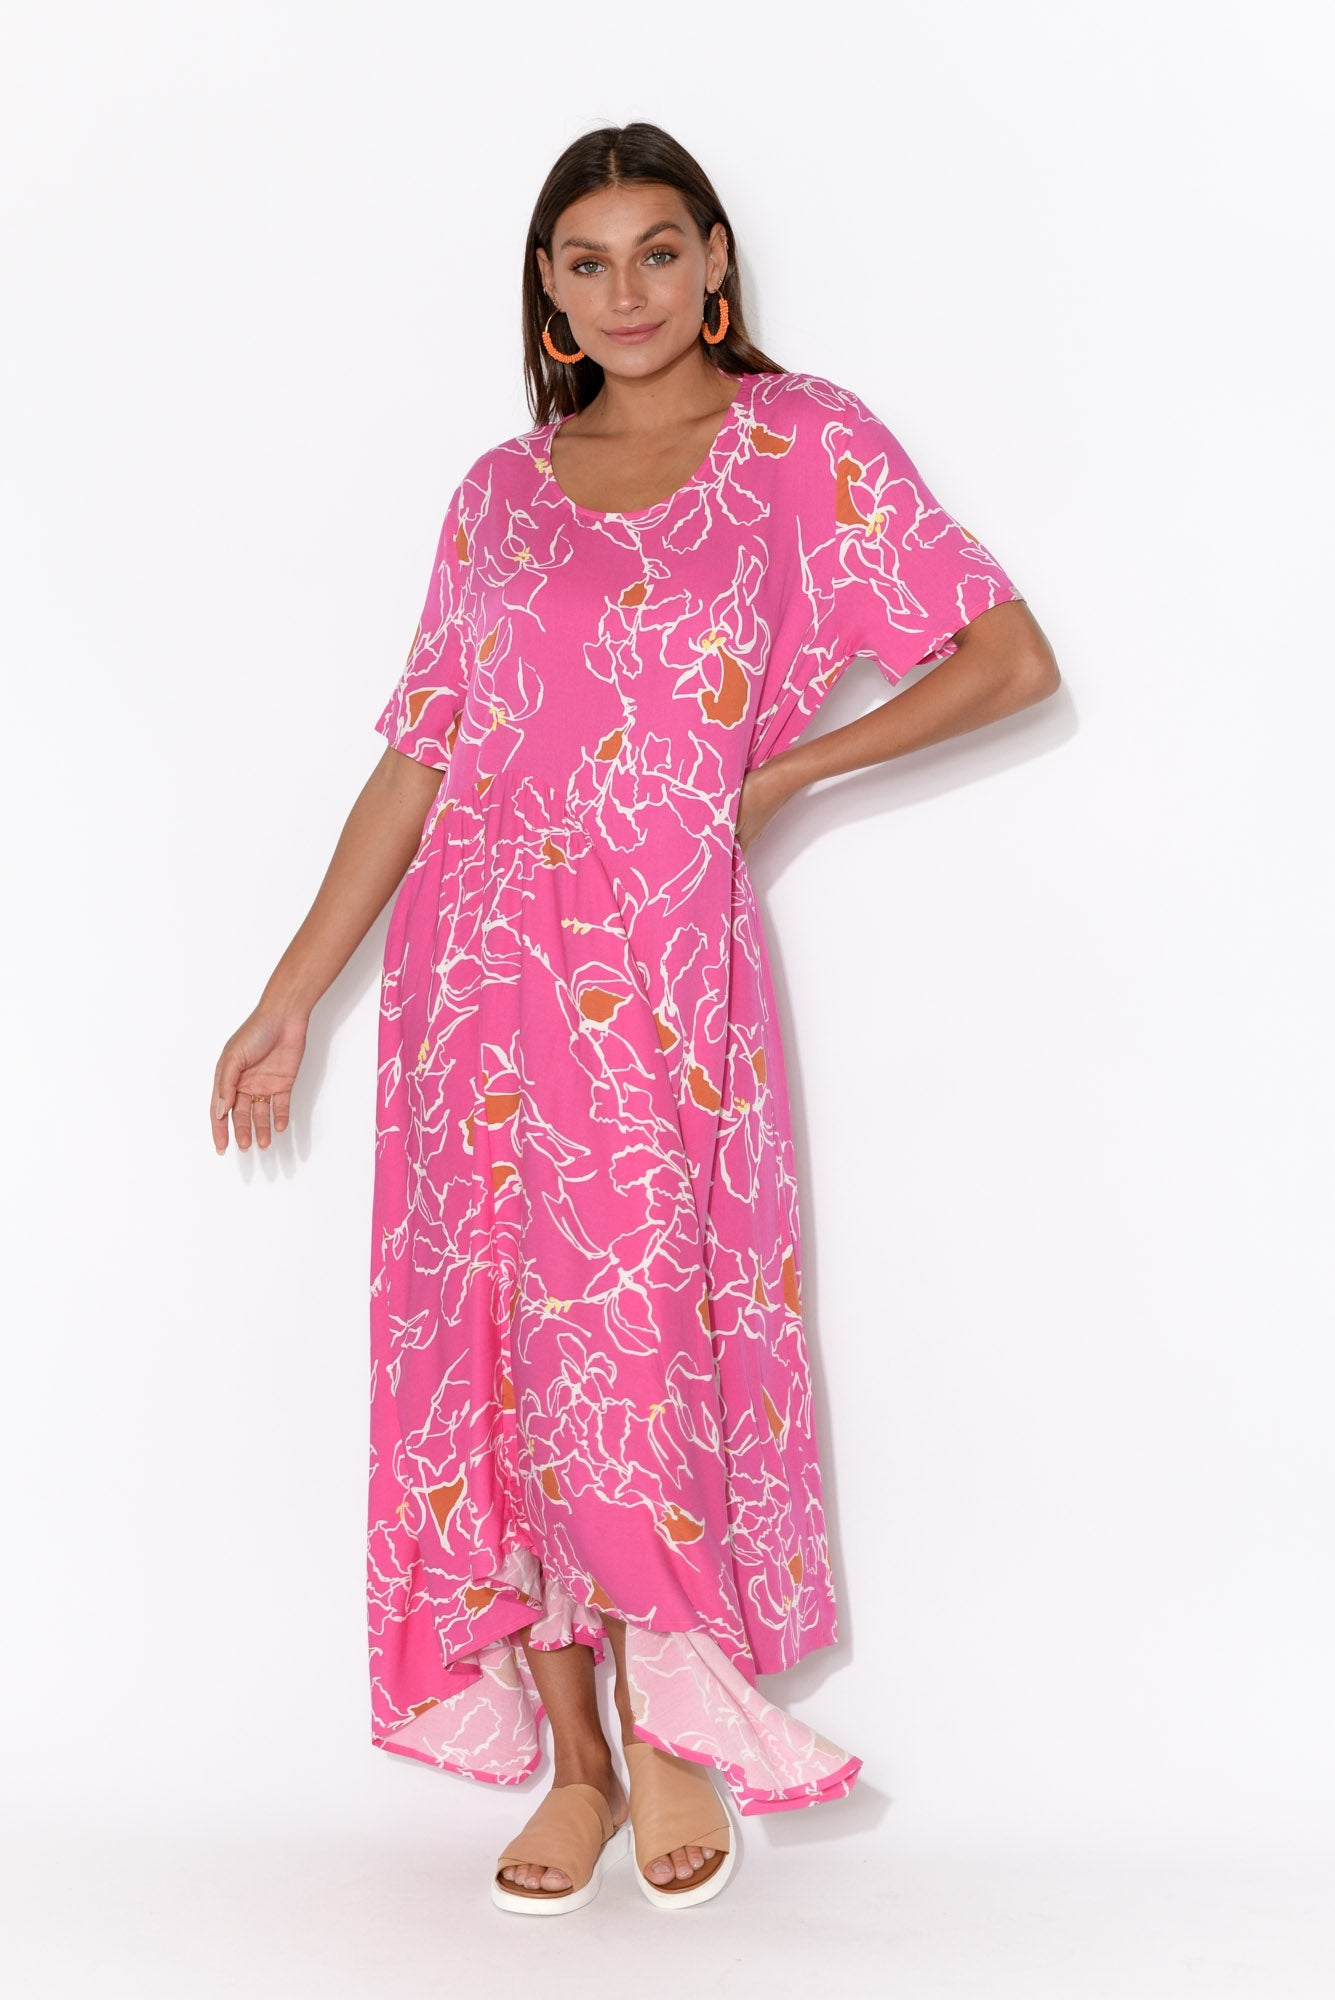 Juliana Pink Paradise Asymmetric Dress